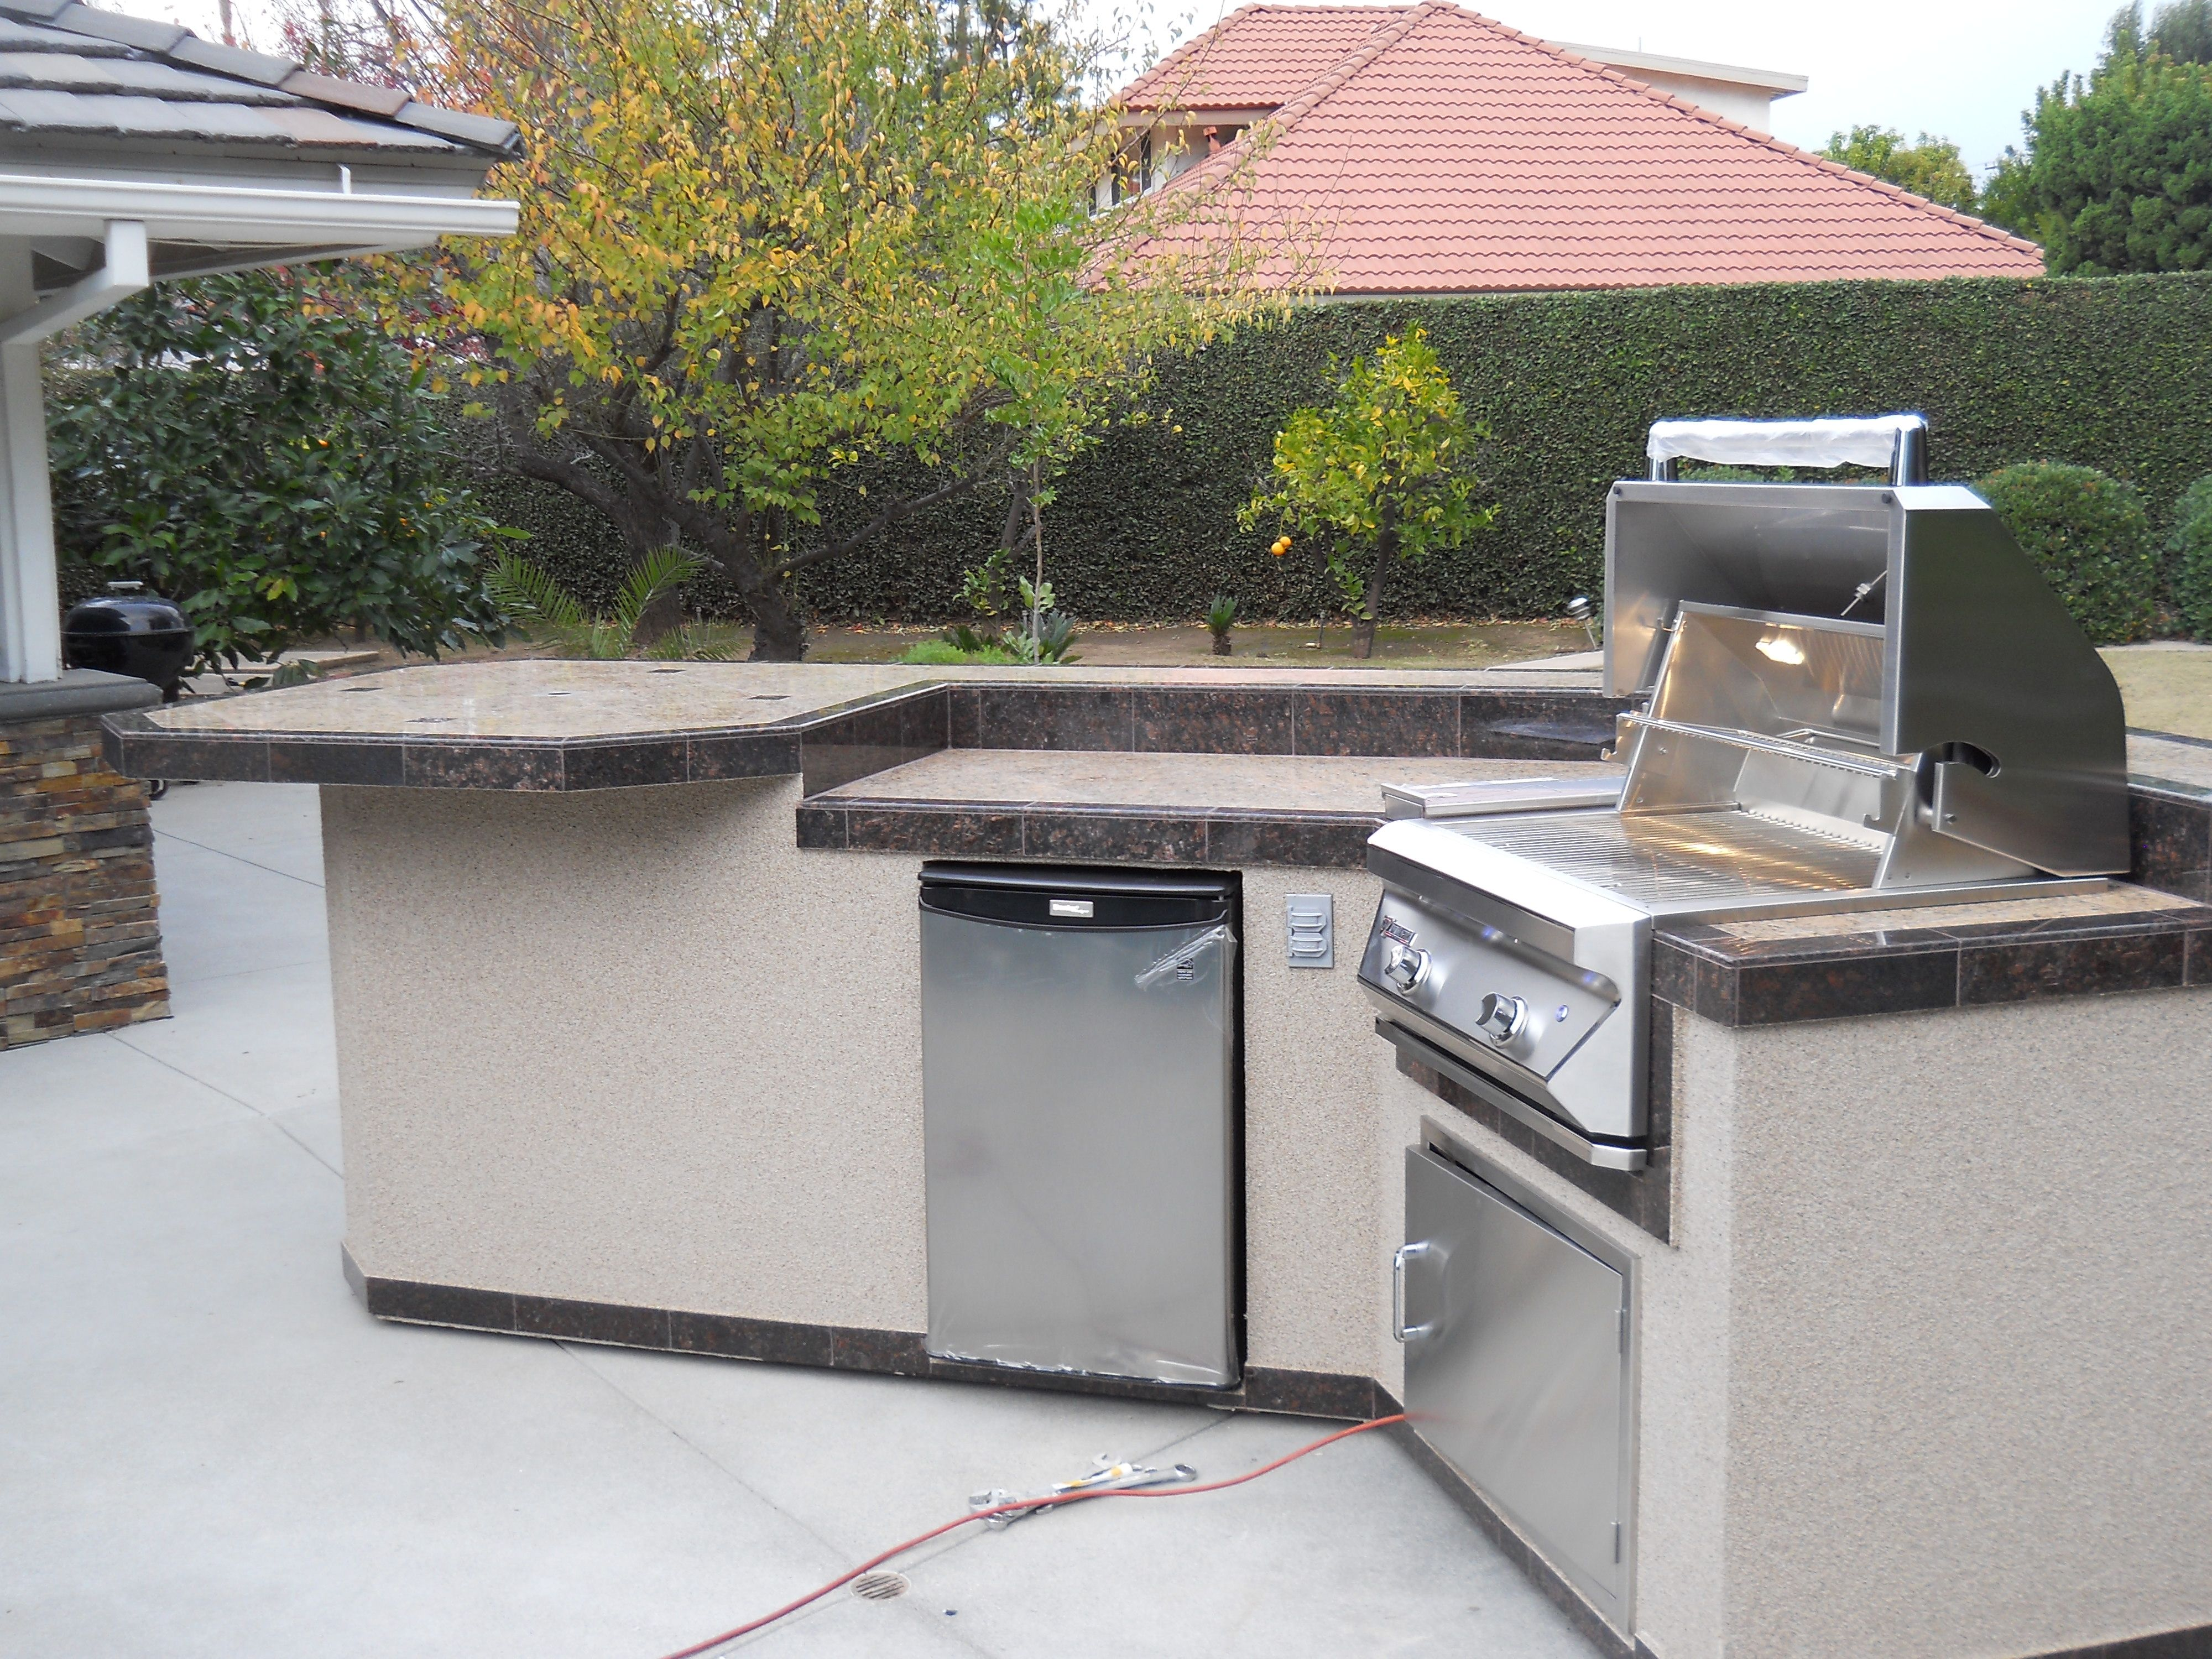 Custom built outdoor kitchen delivered to orange county ca built custom built outdoor kitchen delivered to orange county ca built in grill mini aloadofball Choice Image